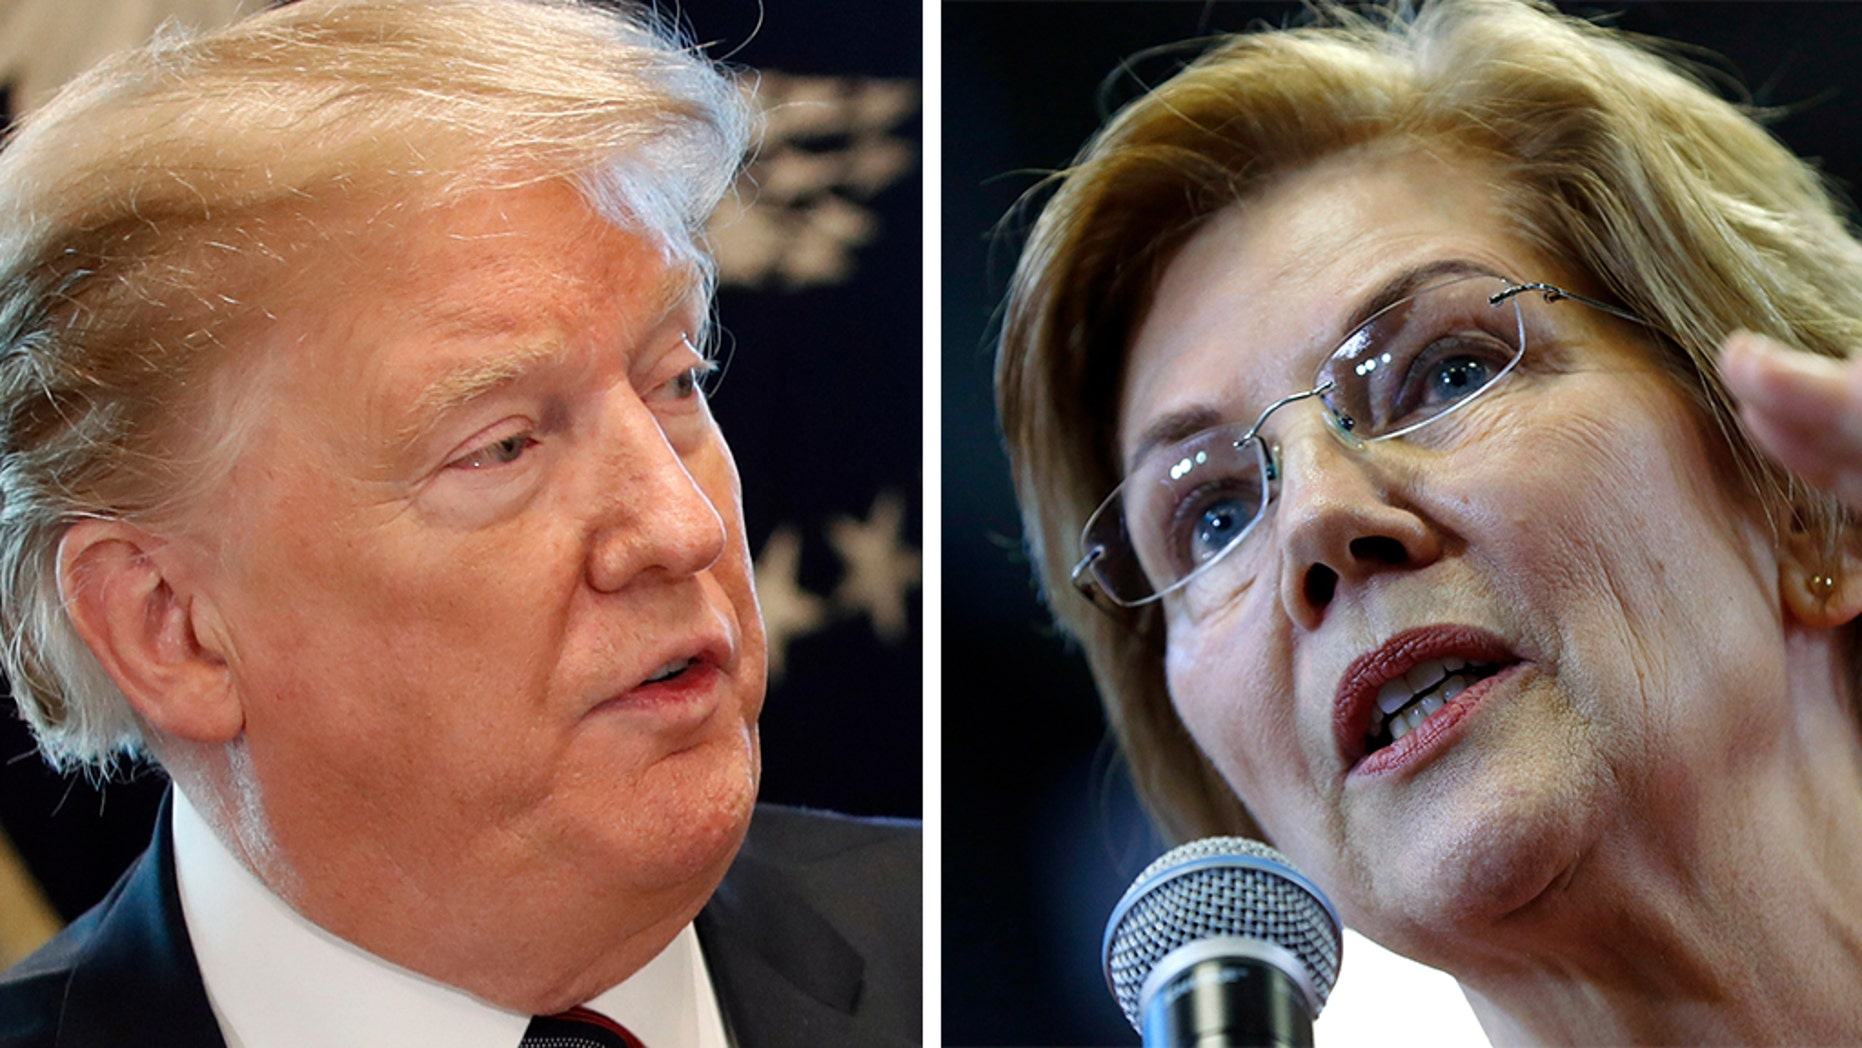 President Trump mocked Massachusetts Democratic Sen. Elizabeth Warren who cracked open a beer on-camera and took some questions from her followers on New Year's Eve in a spontaneous livestream posted on Instagram that channeled similar social-media eff